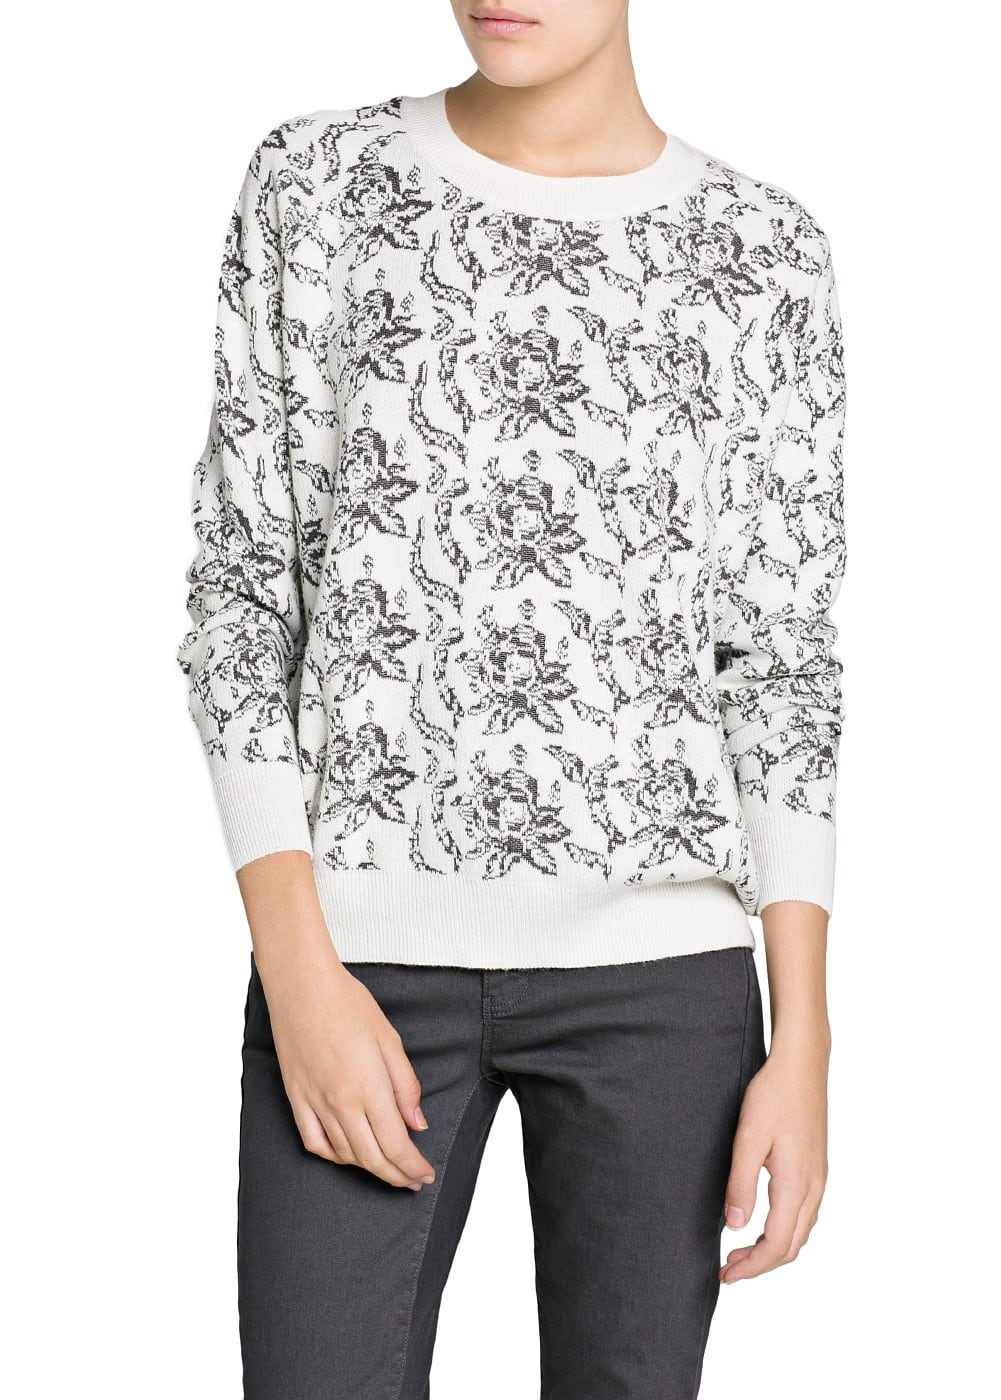 Floral jacquard sweater